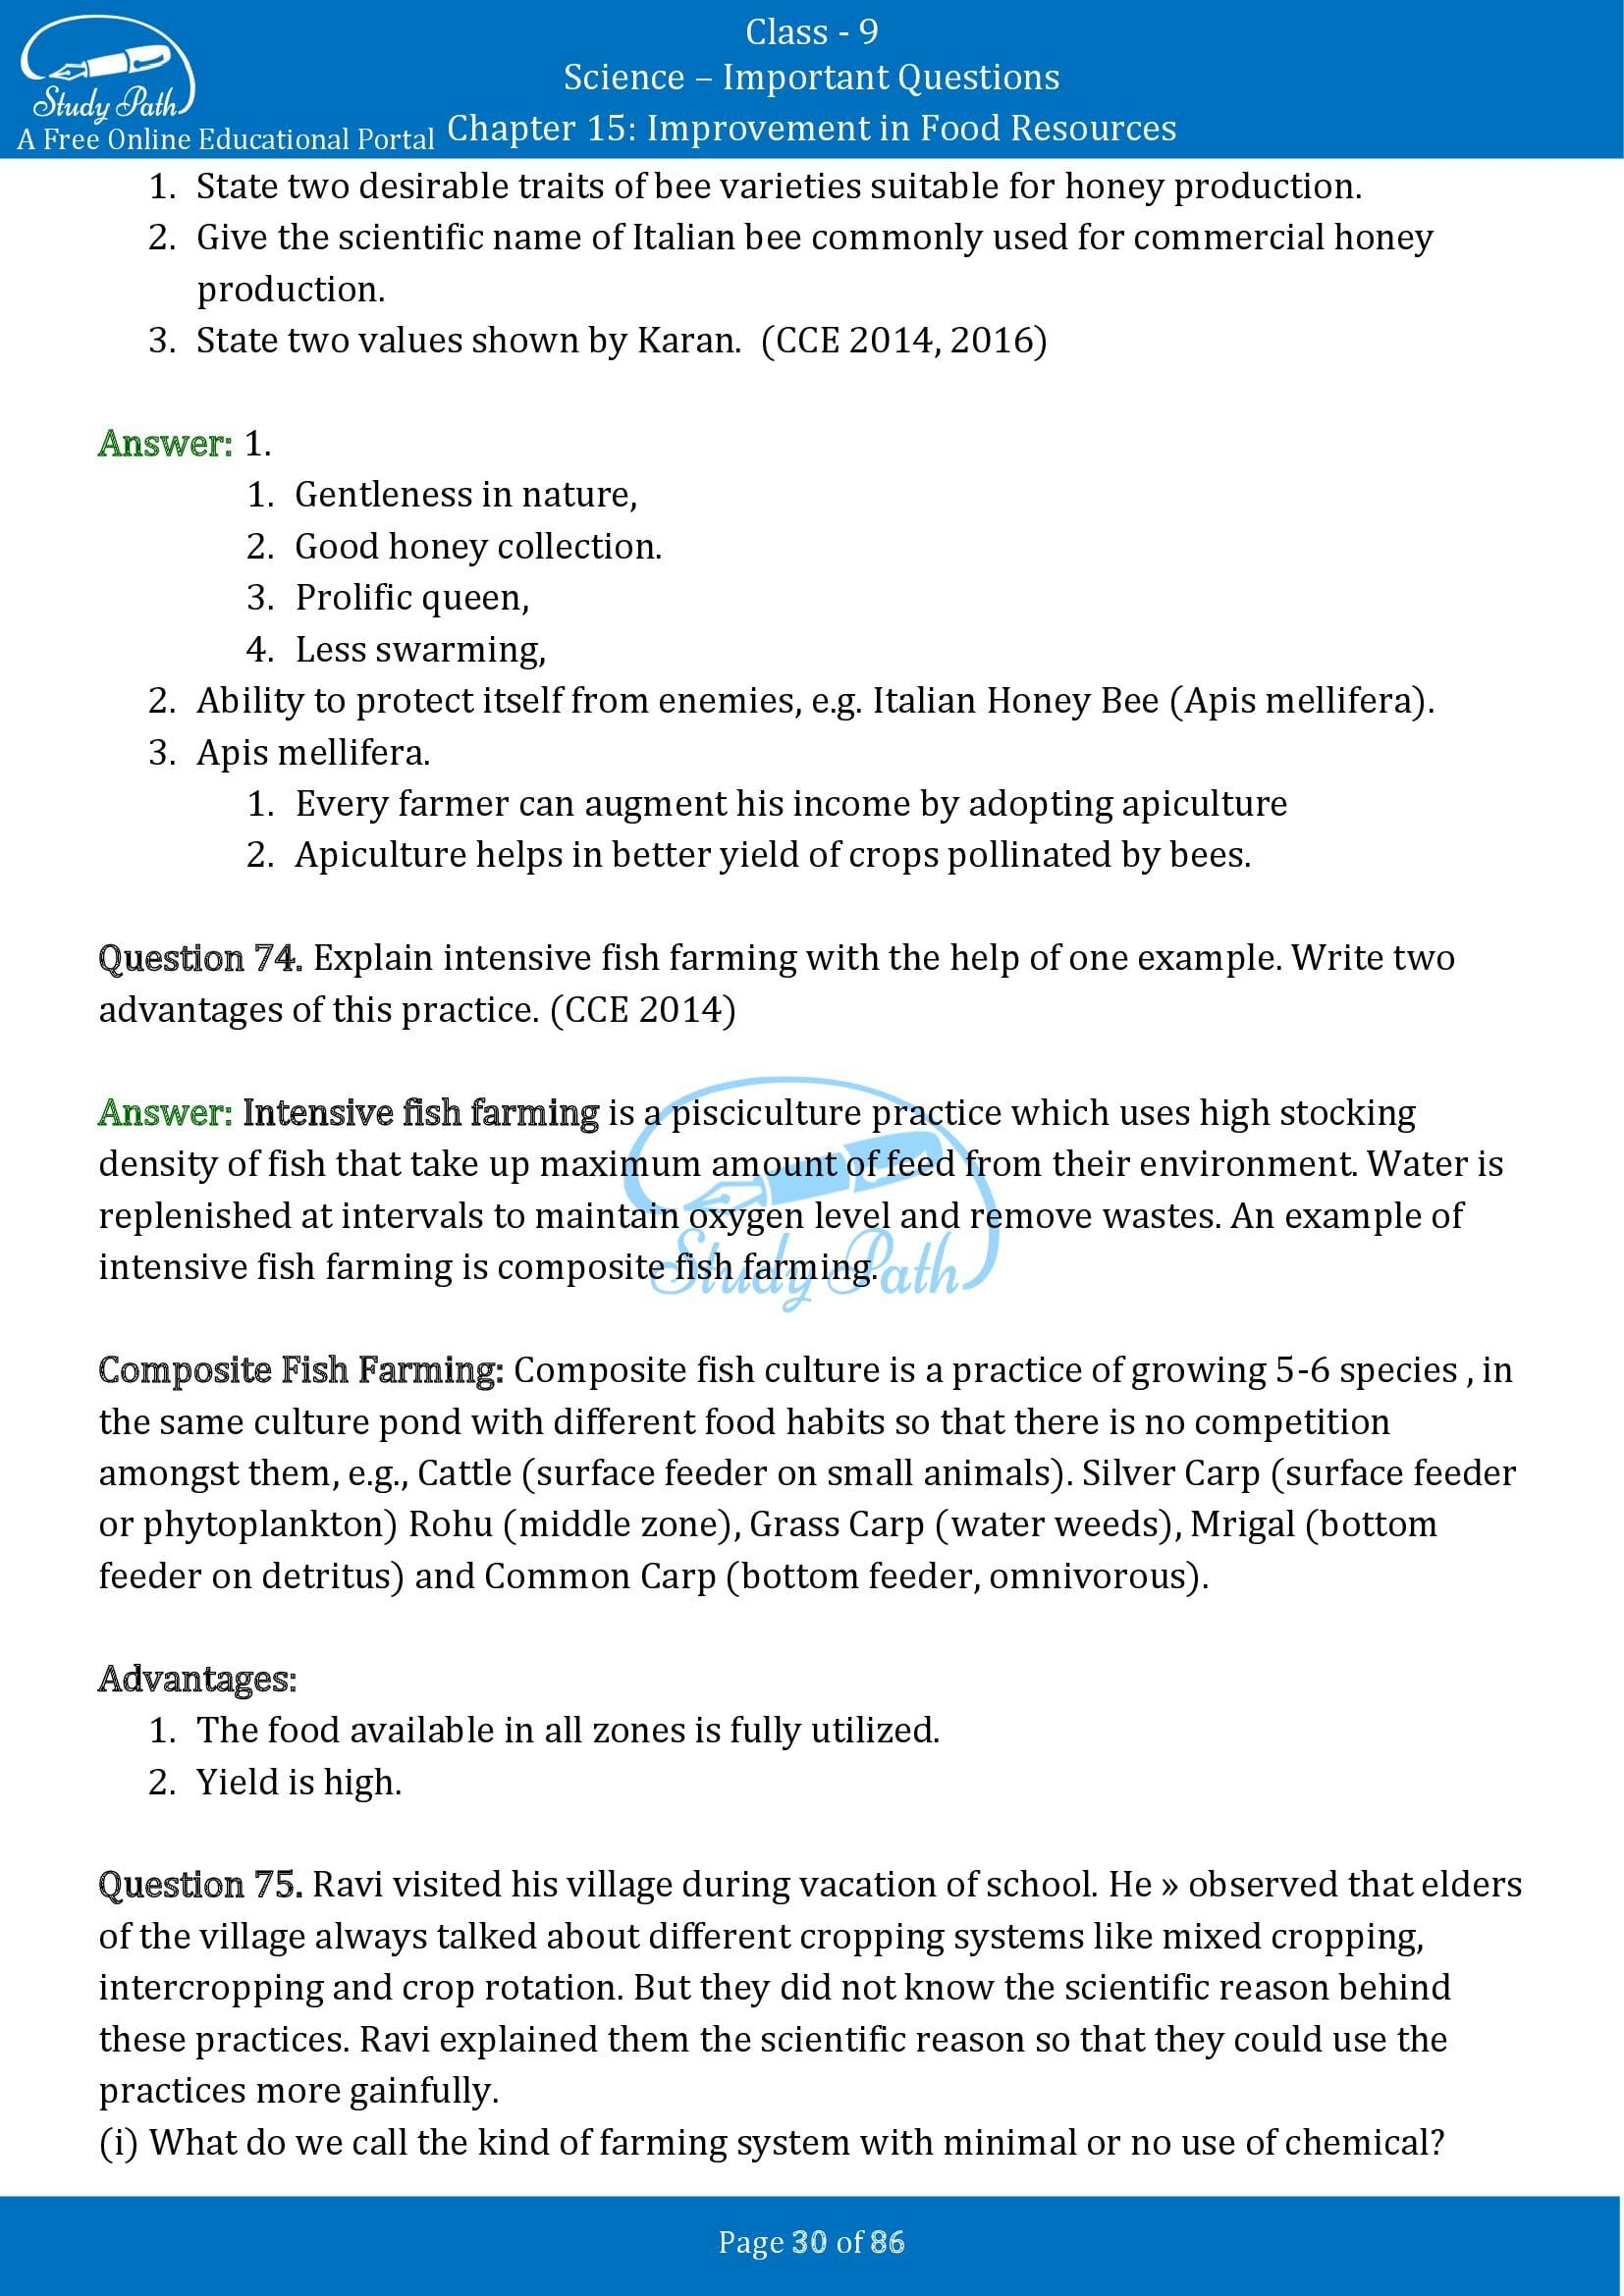 Important Questions for Class 9 Science Chapter 15 Improvement in Food Resources 00030